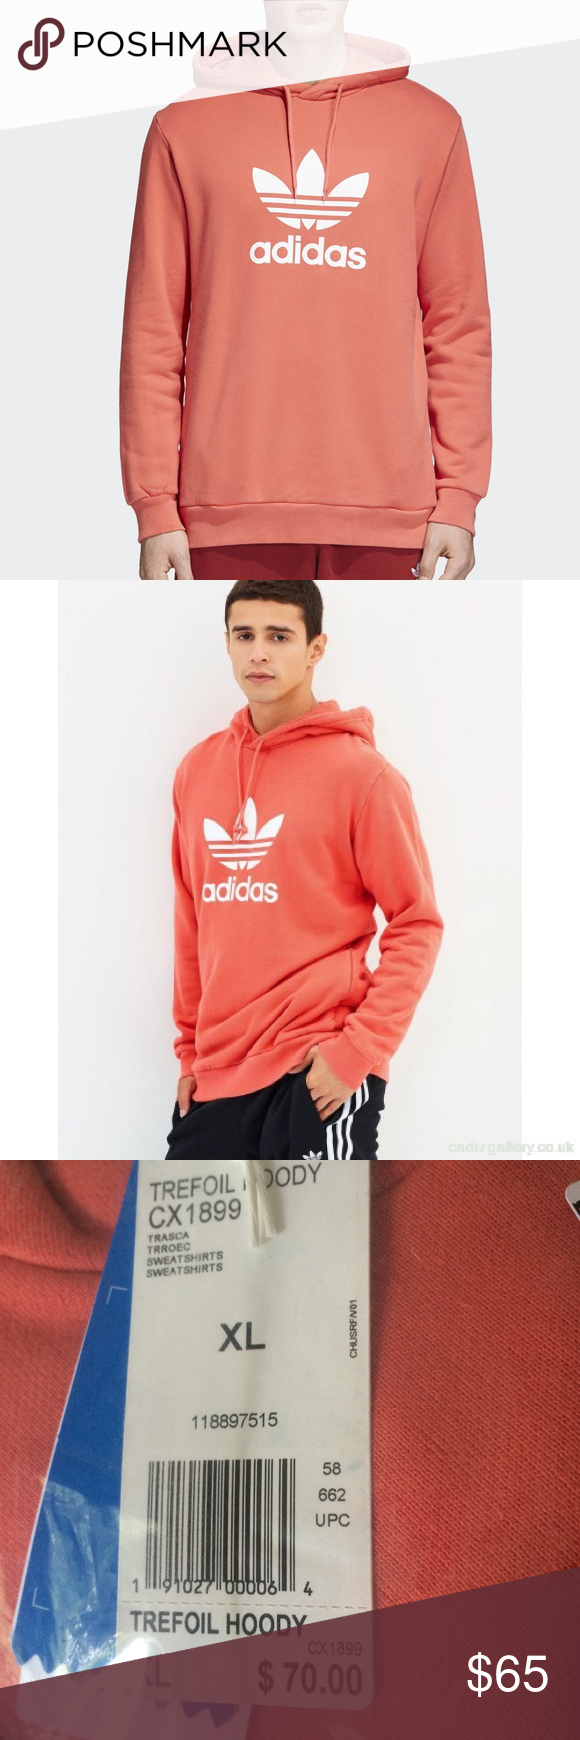 Rare Color Adidas Hoodie Mens Xl Sweatshirt Nwt Sold Out At Pacsun This Color Is Part Of The Adicolor Line From Ad Adidas Hoodie Mens Adidas Hoodie Sweatshirts [ 1740 x 580 Pixel ]